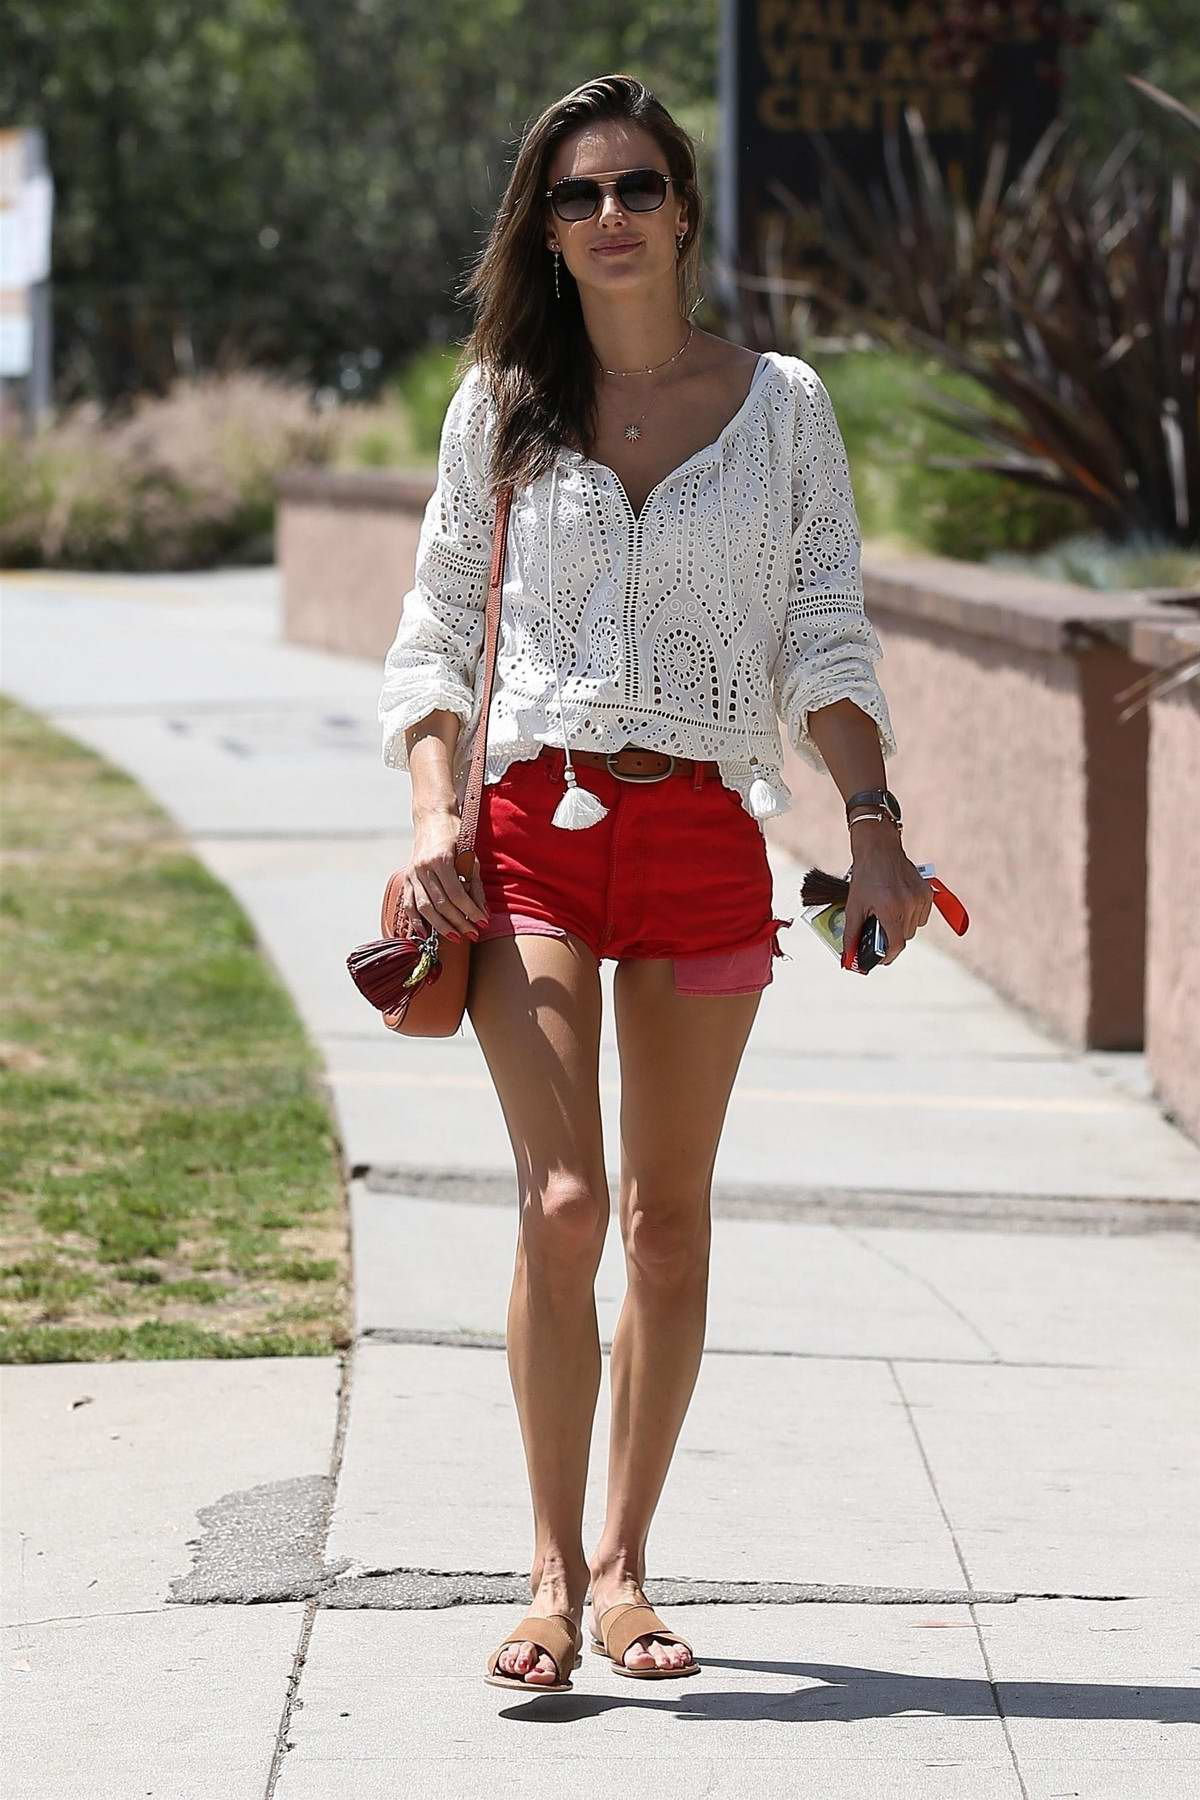 Alessandra Ambrosio wears a pair of red denim shorts and white top while out in Pacific Palisades, California